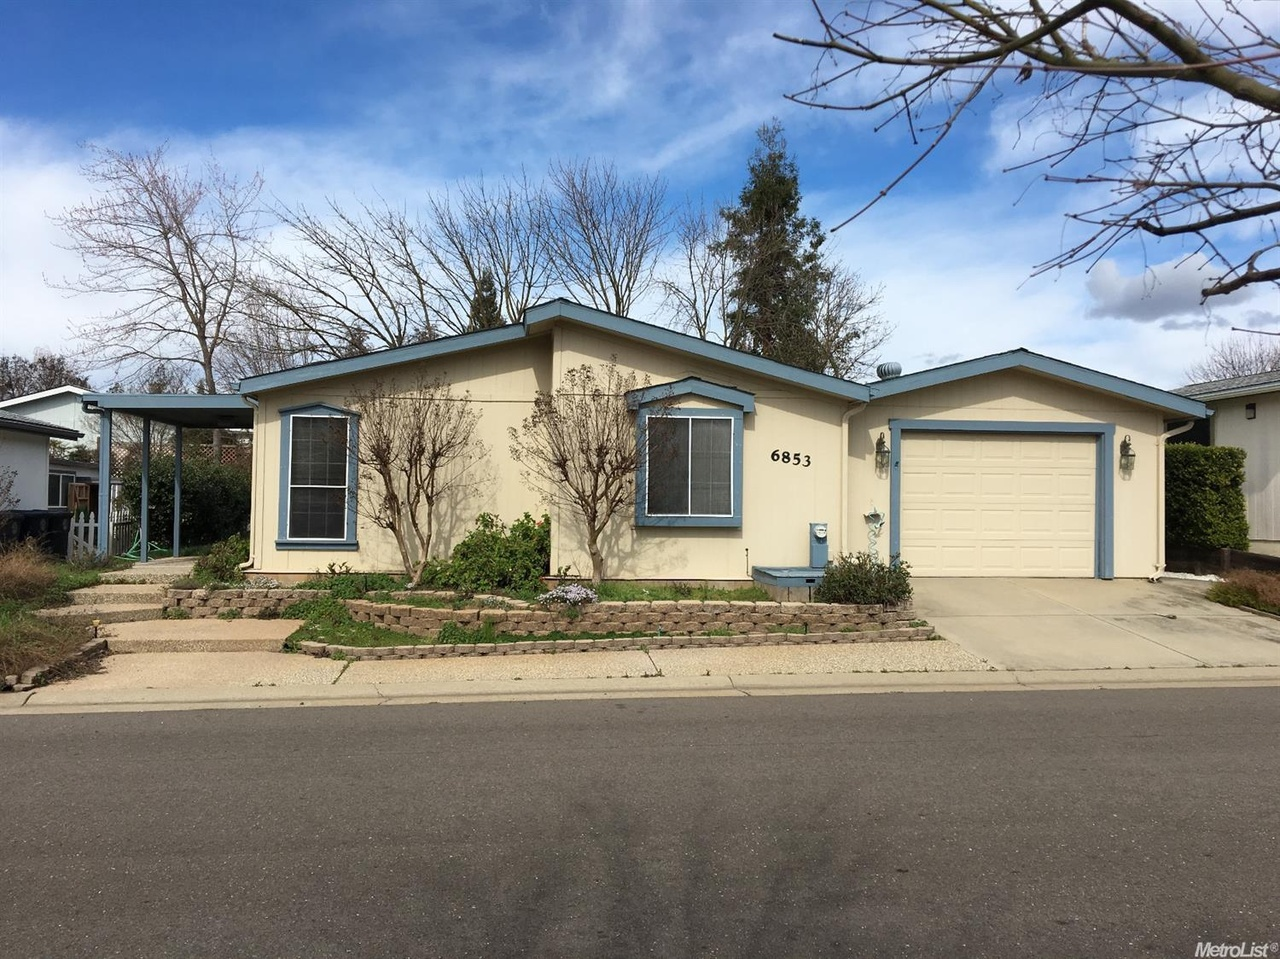 mobile homes for sale in citrus heights ca with 19093717 on 19014330 in addition 2010 Kingsport Lite By Gulstearm 19ft Travel Trailer Dry Weight 2800 7900 26072765 also 19218014 together with 97001991 Airstream 190 Class B Motorhome Very Low Miles Obo  19522888 together with 19203089.